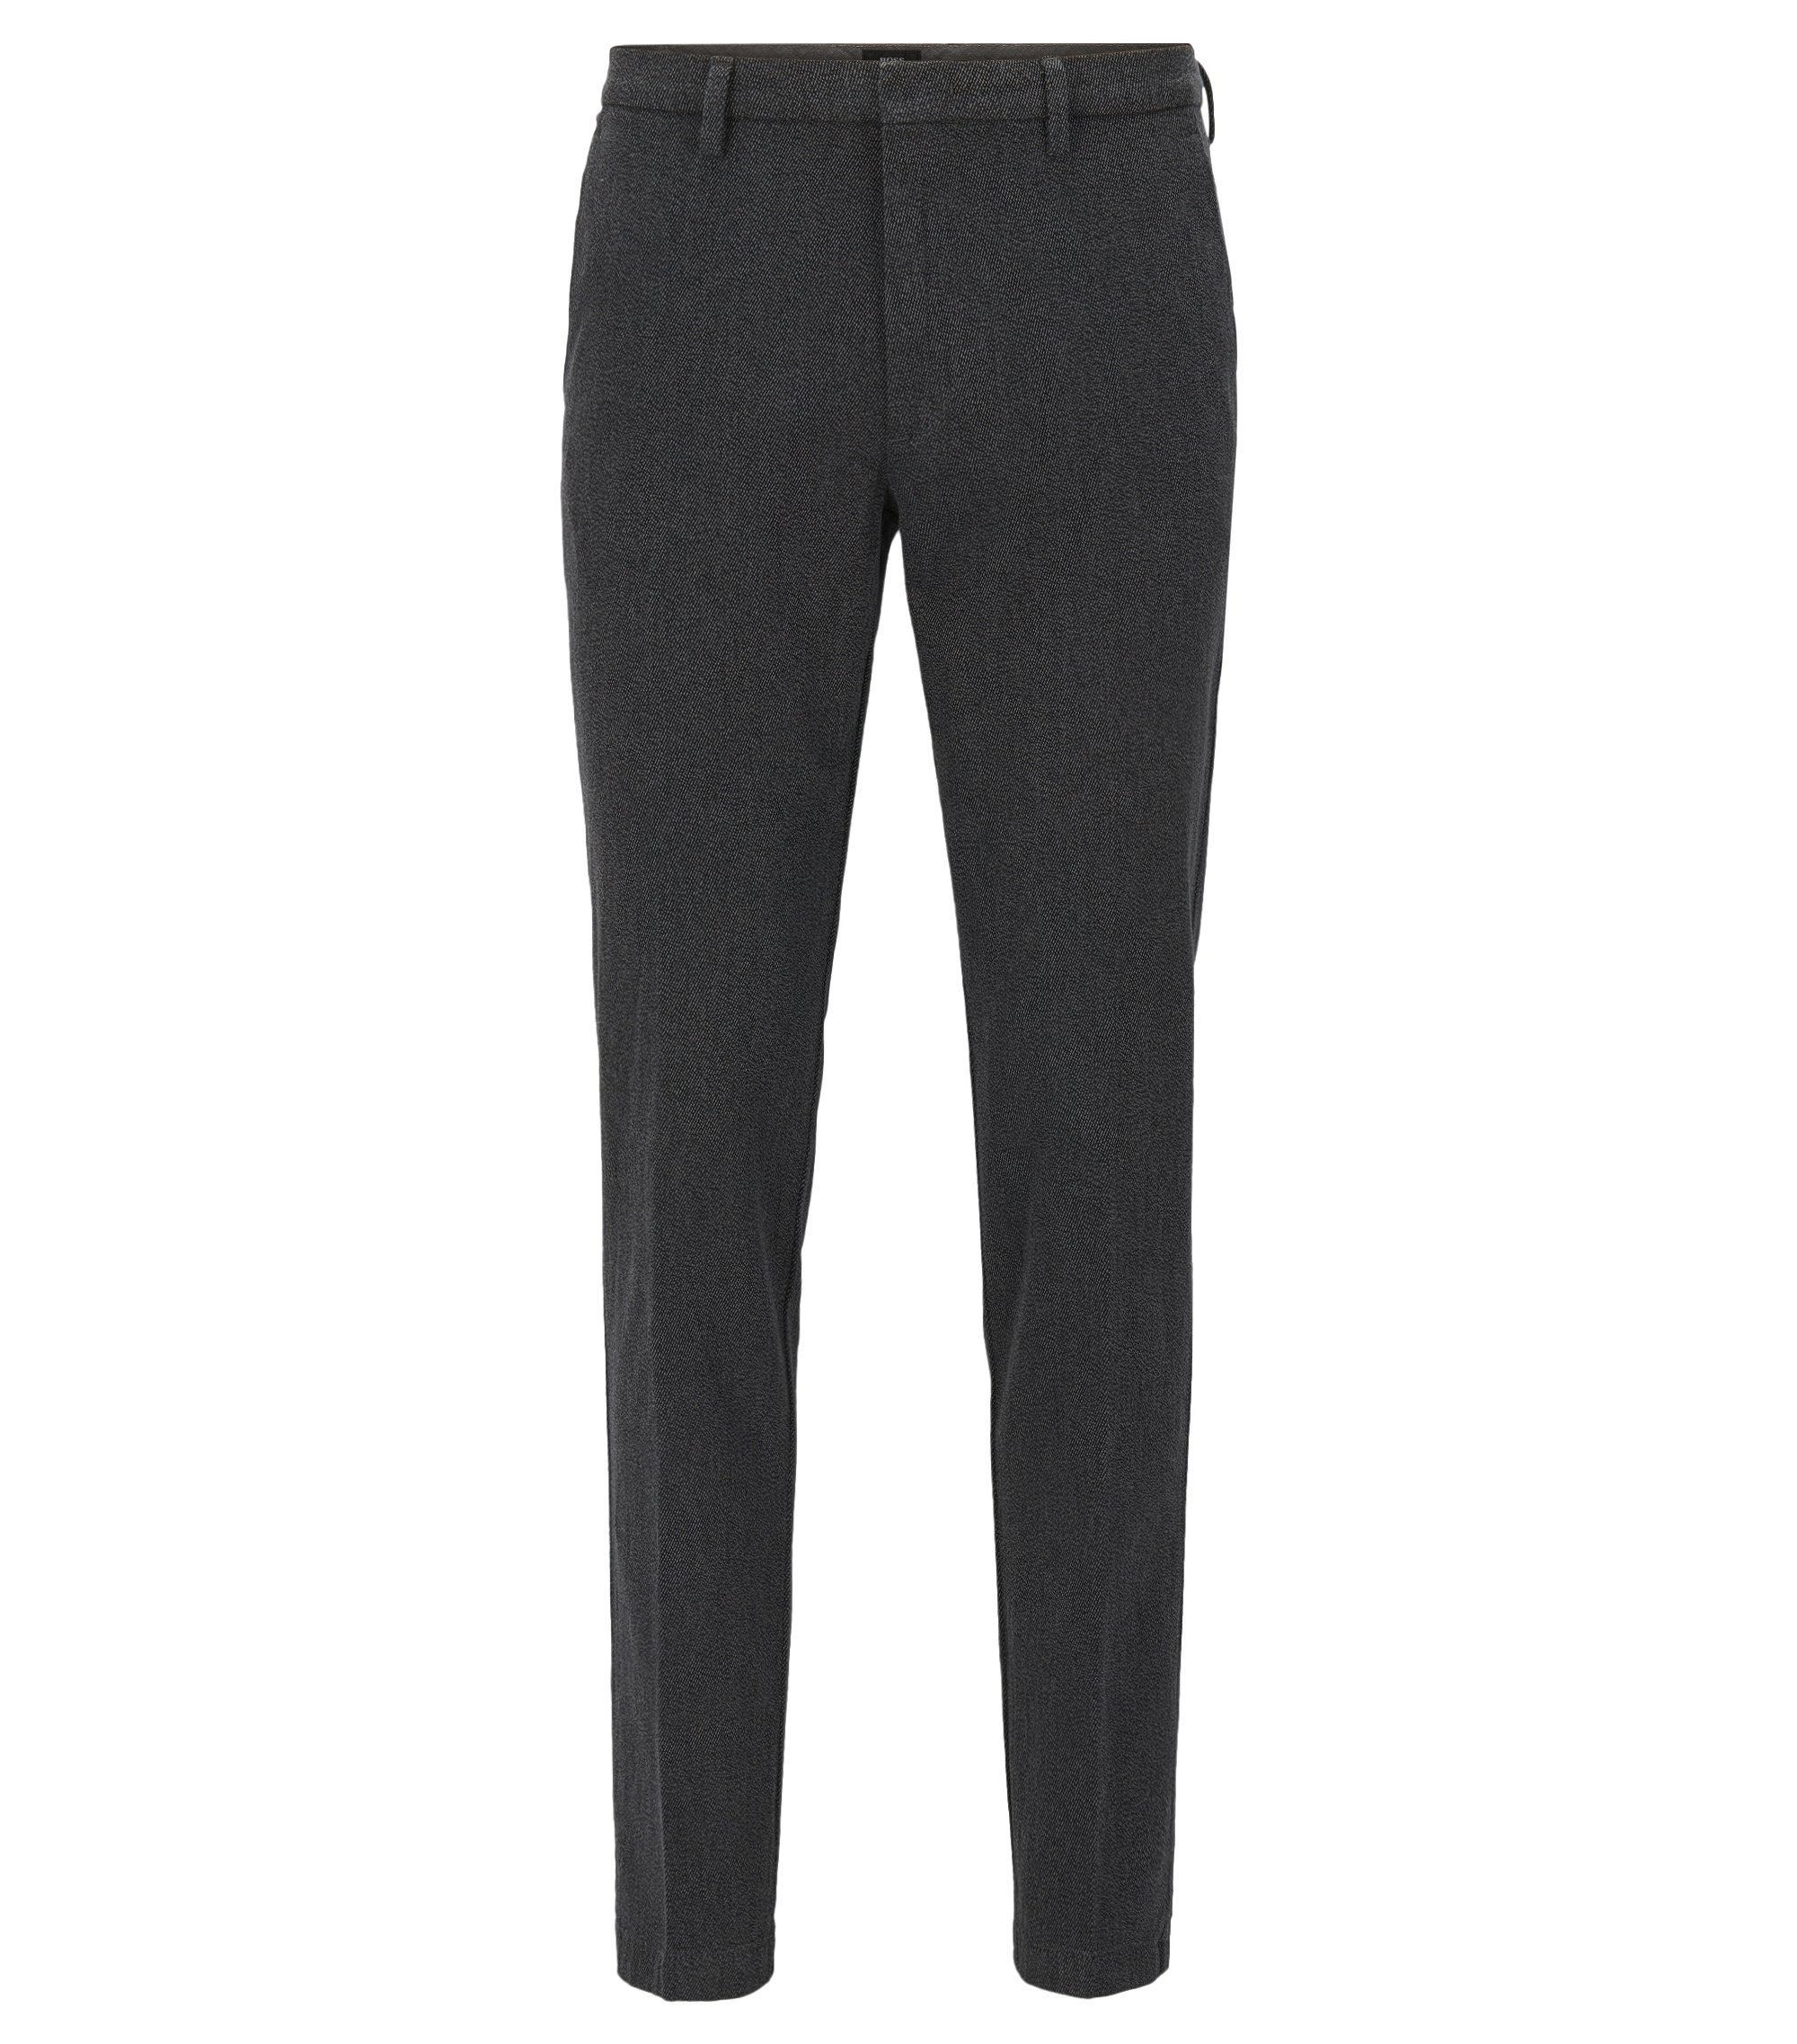 Pantalon Slim Fit en coton stretch italien, Gris sombre